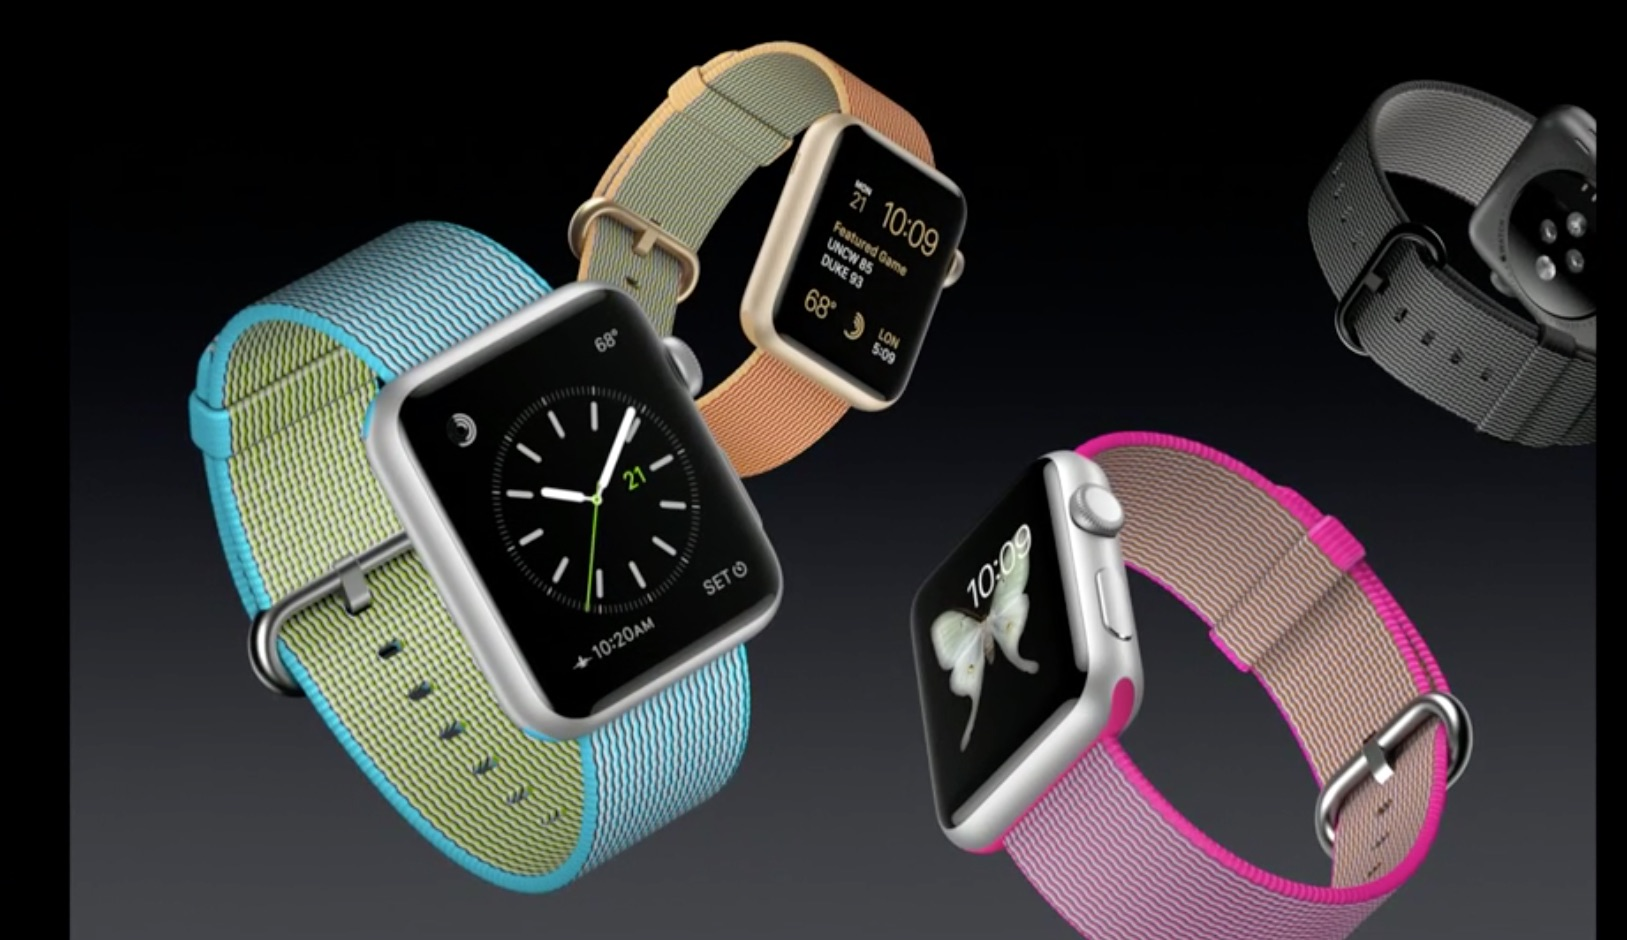 Apple Watch met nylon bandje.